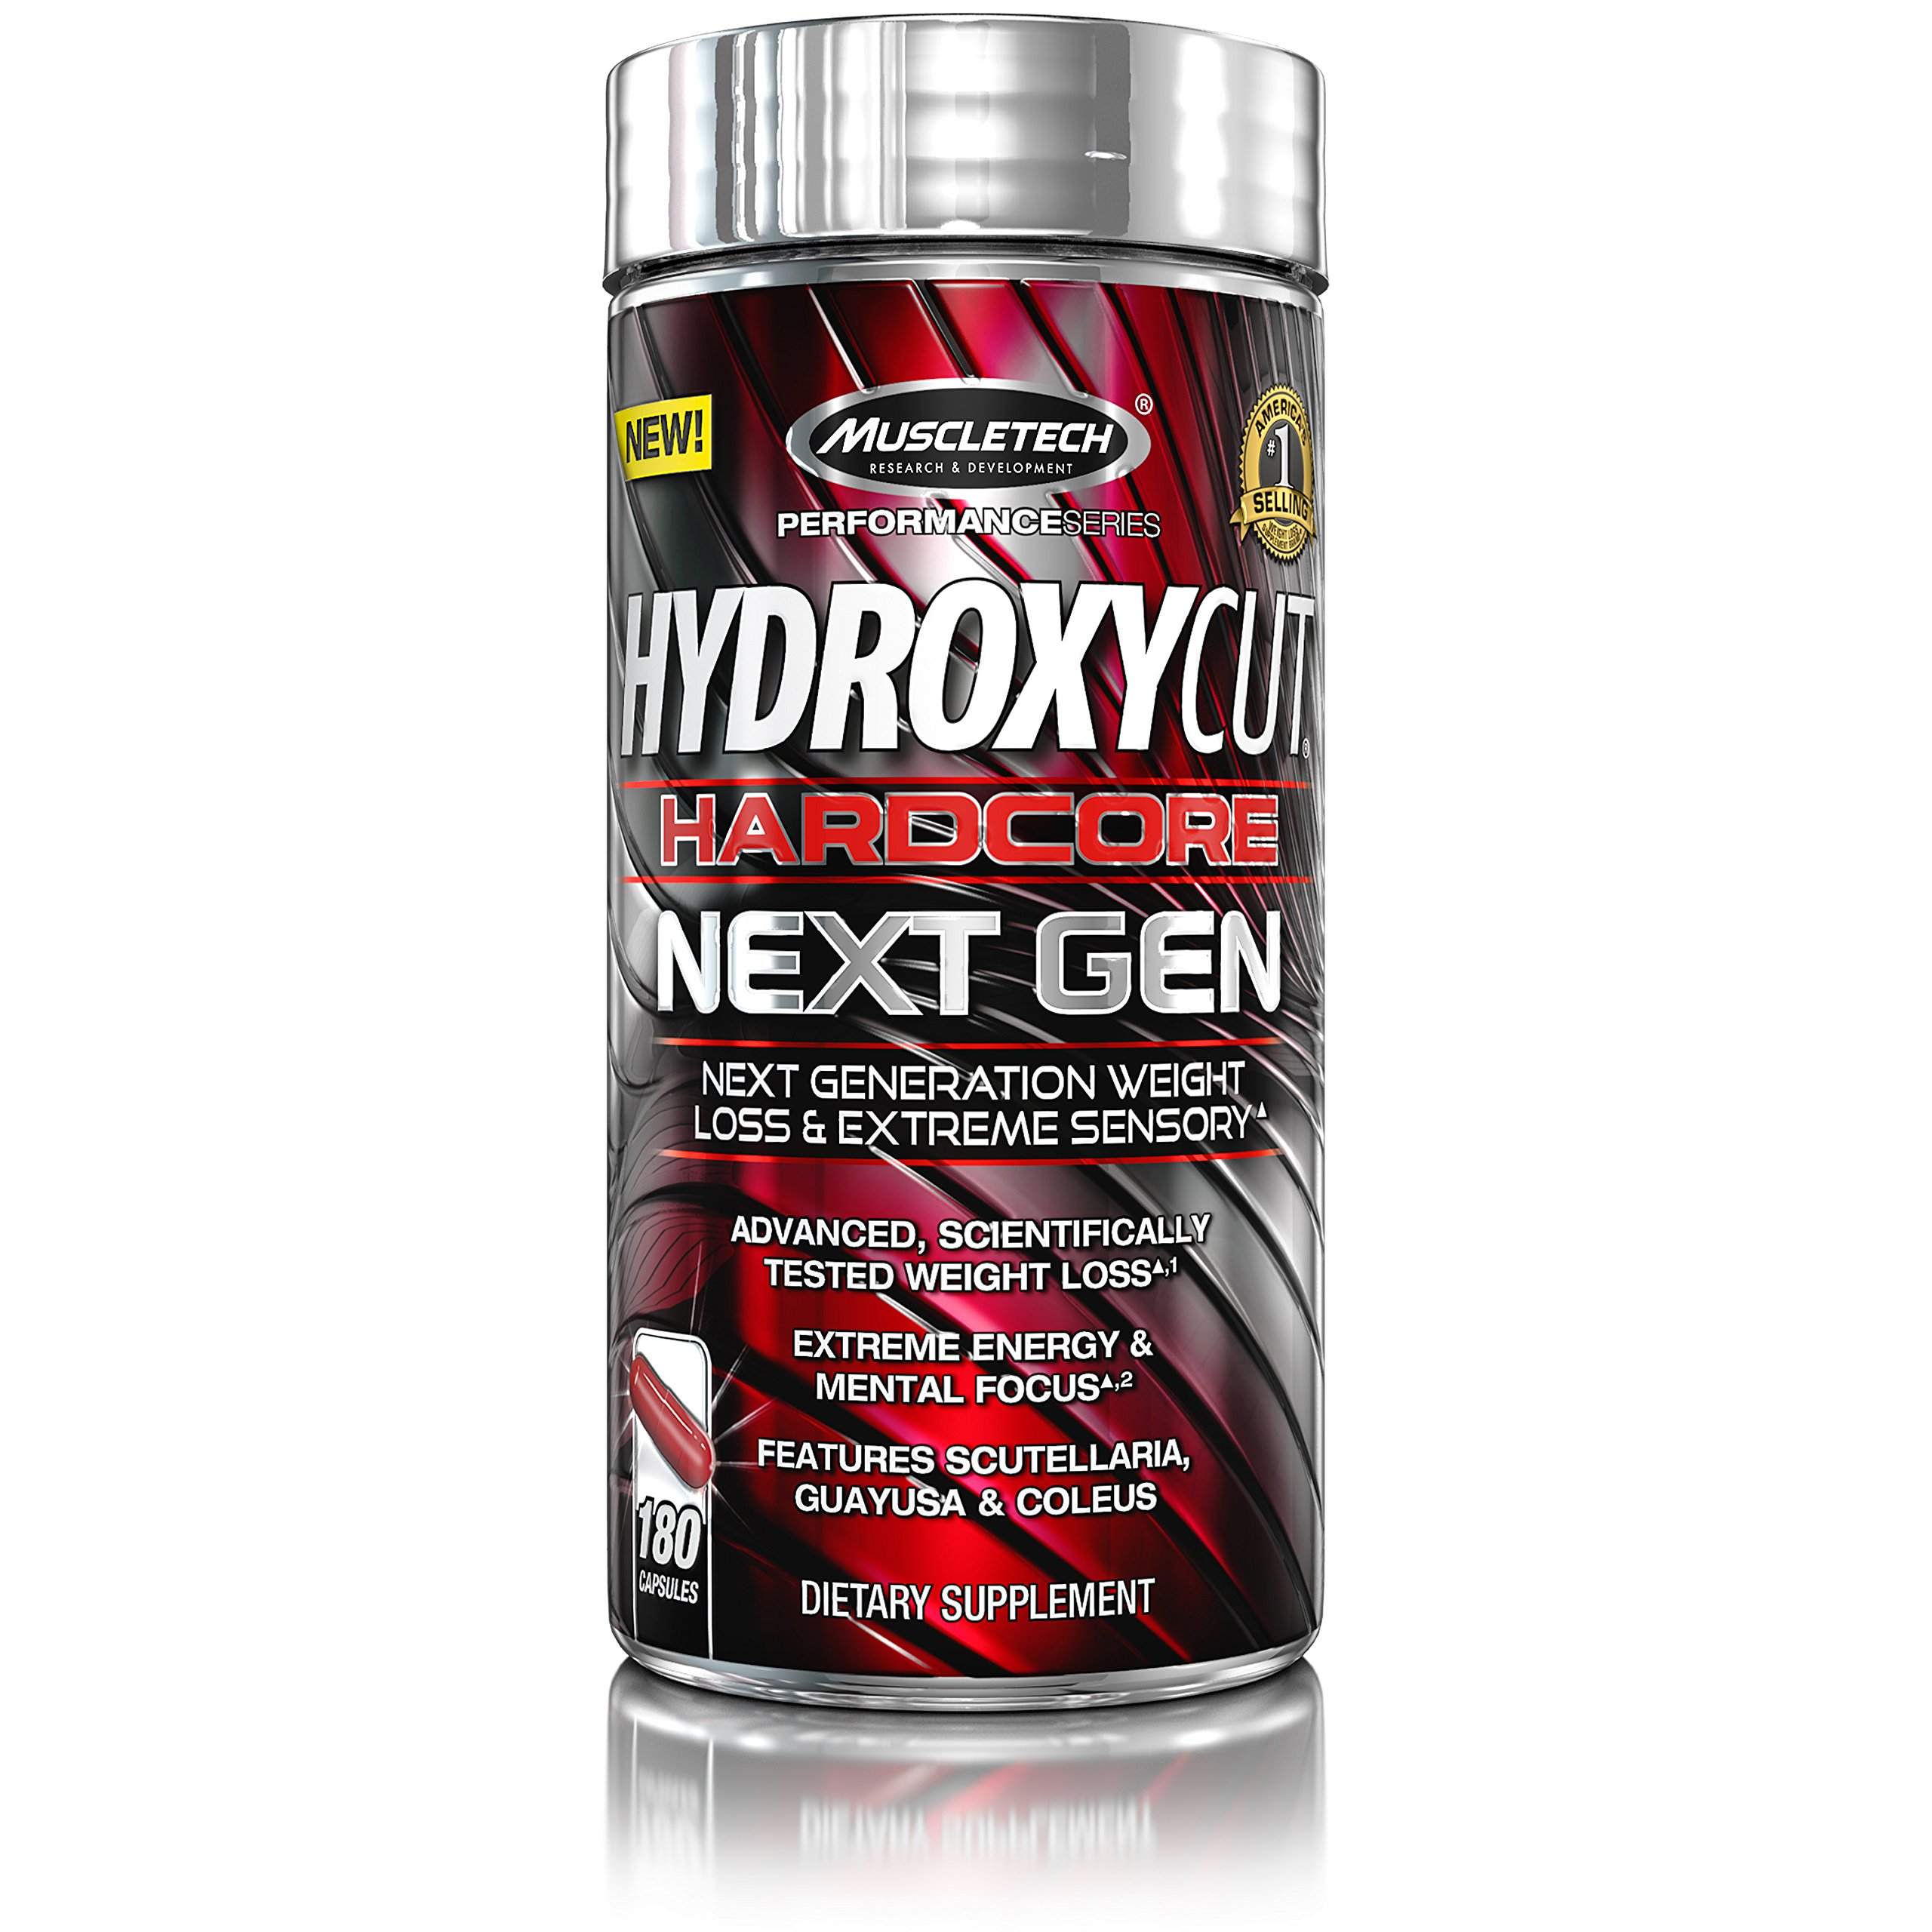 MuscleTech Hydroxycut Hardcore Next Gen, Scientifically Tested Weight Loss and Energy, Weight Loss Supplement, 180 Capsules